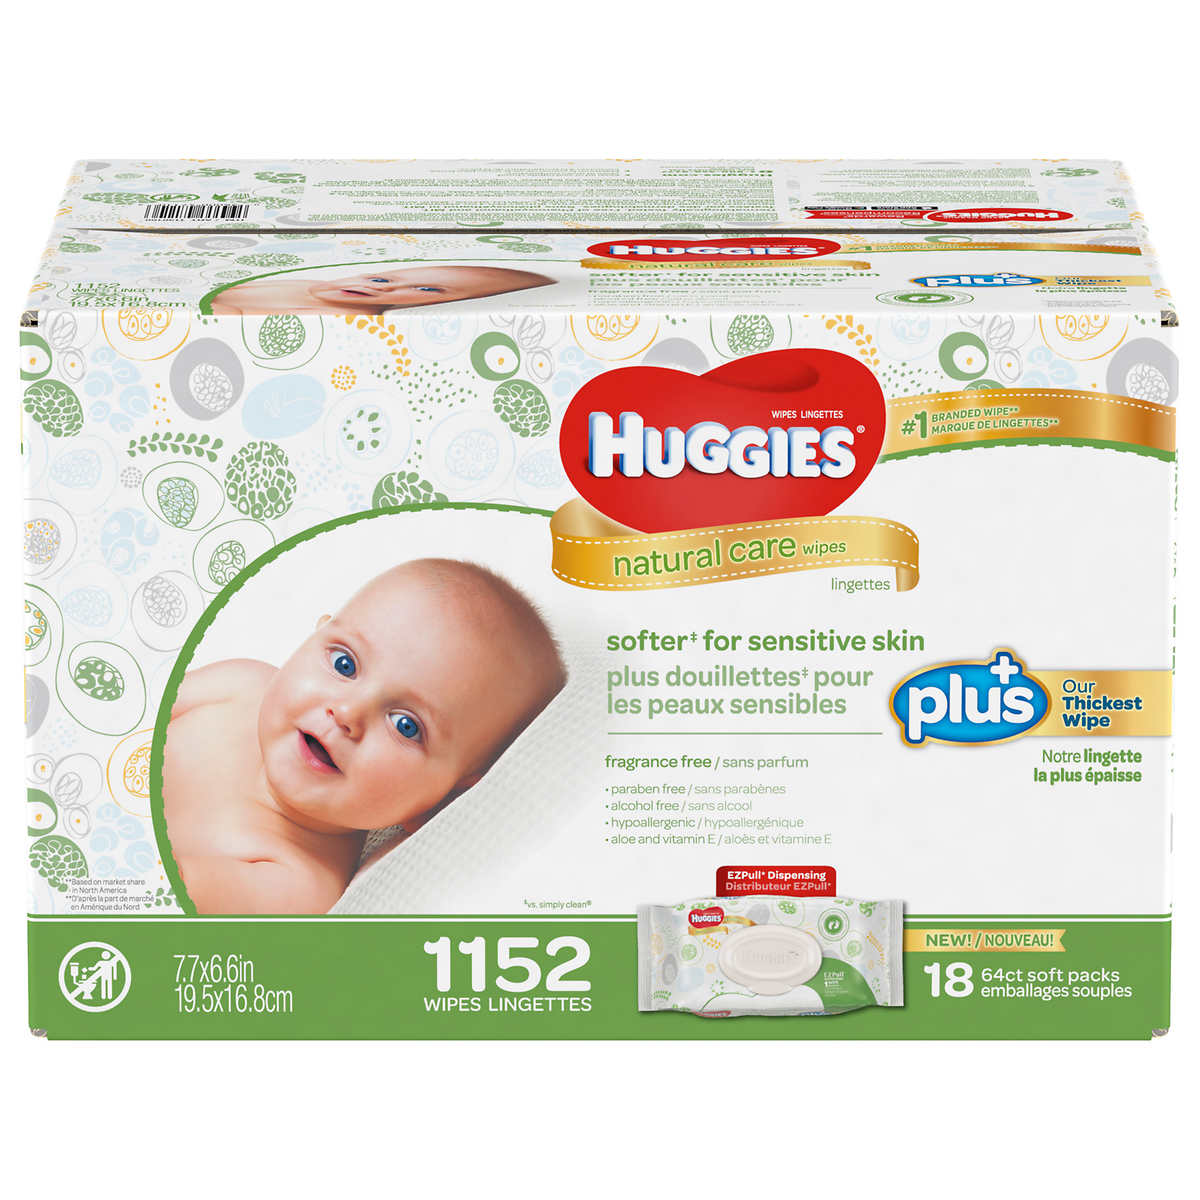 Huggies Natural Care Plus Baby Wipes 1,152 ct Hypoallergenic with Aloe & Vitamin E Fragrance-Free &... by Huggies Natural Care Plus